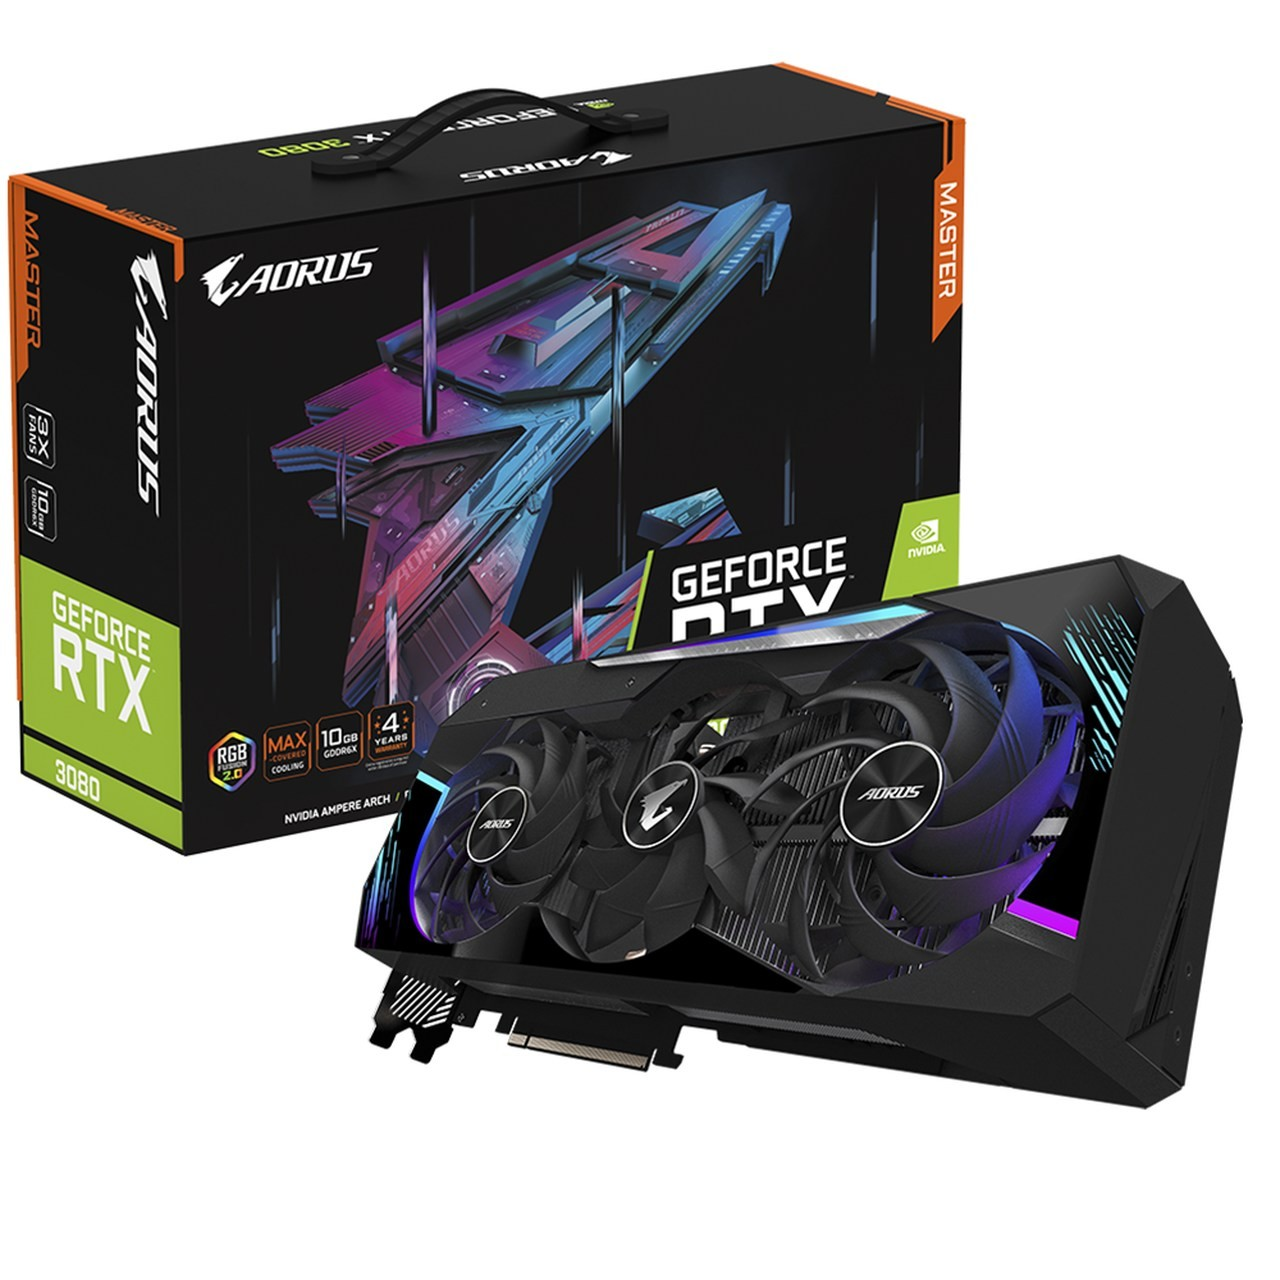 Placa de Video Gigabyte AORUS GeForce RTX 3080 MASTER 10G 10GB GDDR6X 320-bit - GV-N3080AORUS M-10GD